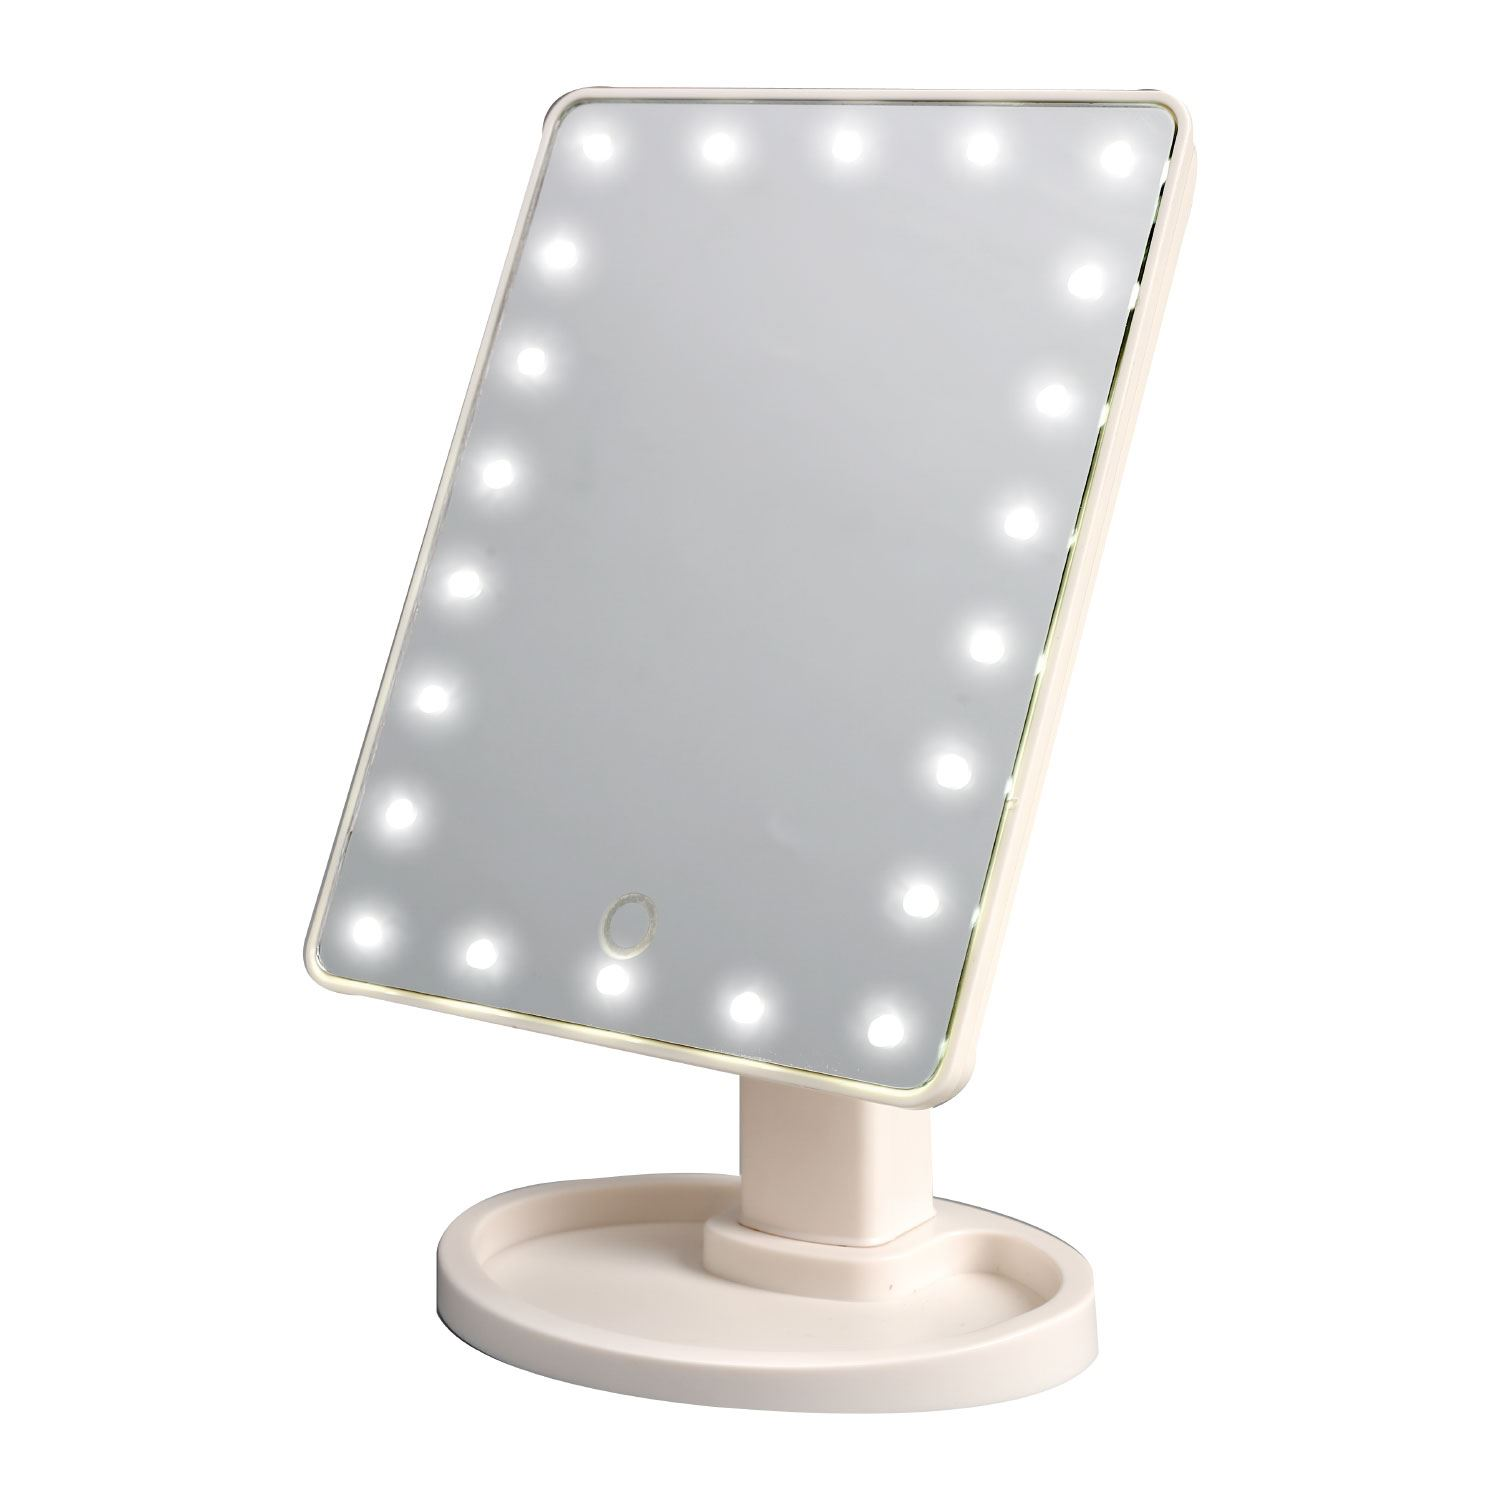 Mirrors Small: 22 LED Light Illuminated Make Up Cosmetic Mirror With